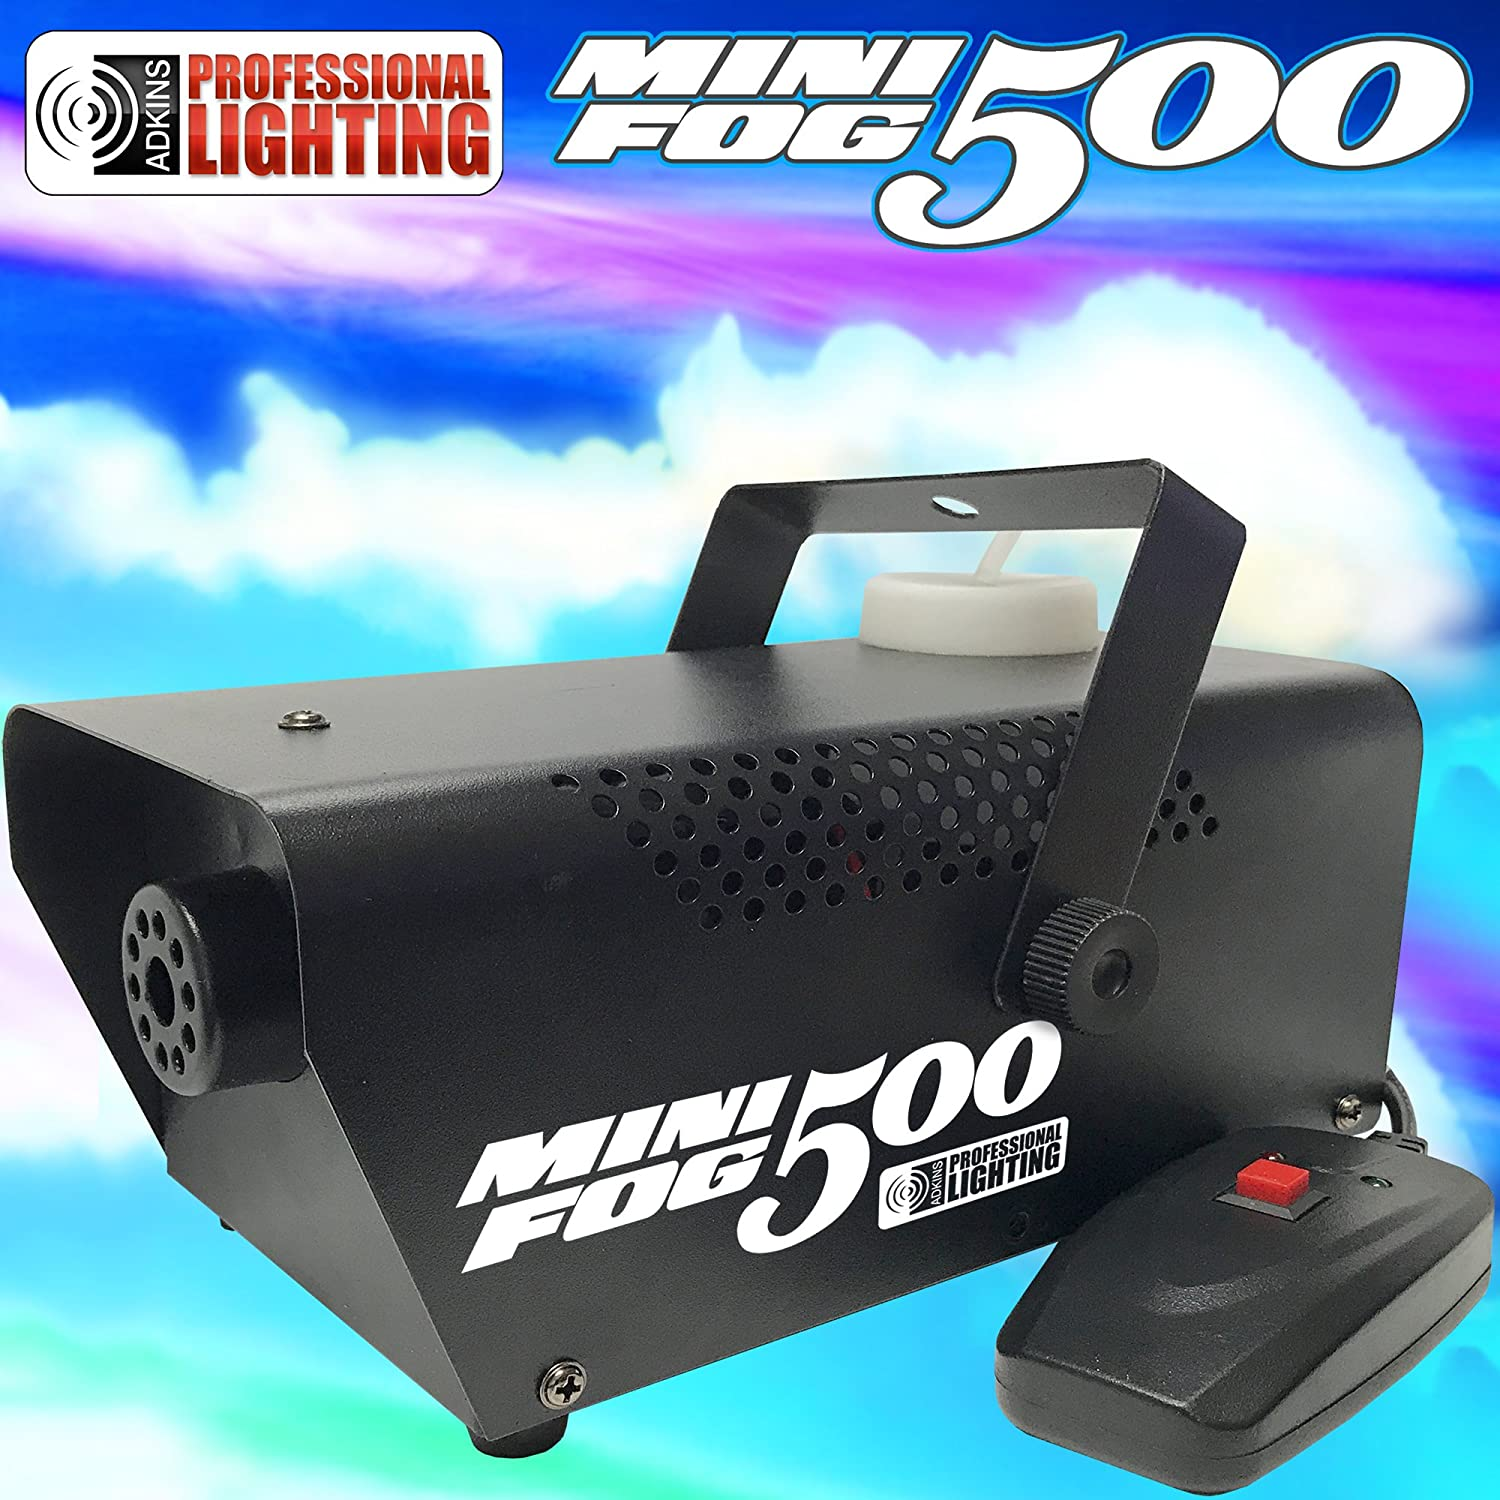 Fog Machine - 500 Watt Mini Fog Machine with Remote - Impressive 2,000 Cubic ft. per minute Adkins Profesional Lighting MINI-FOG-500